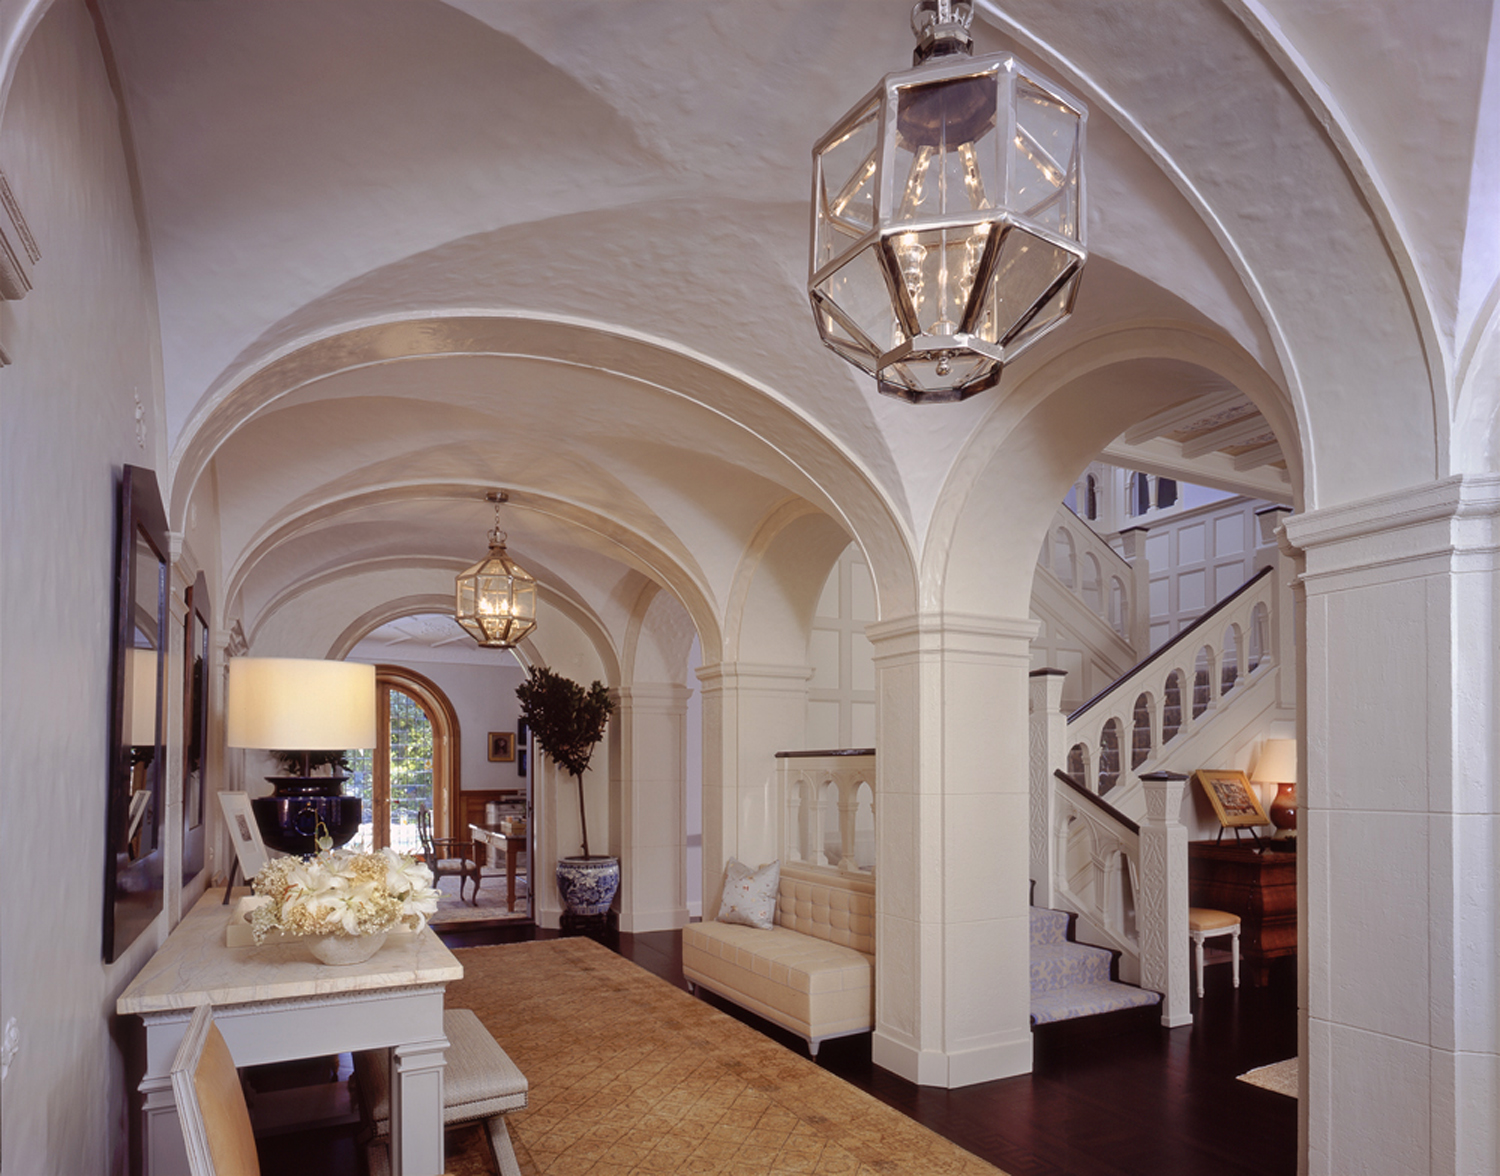 Historic-renovation-entry-hall-vaulted-ceiling-bronxville-ny-interior-w.jpg